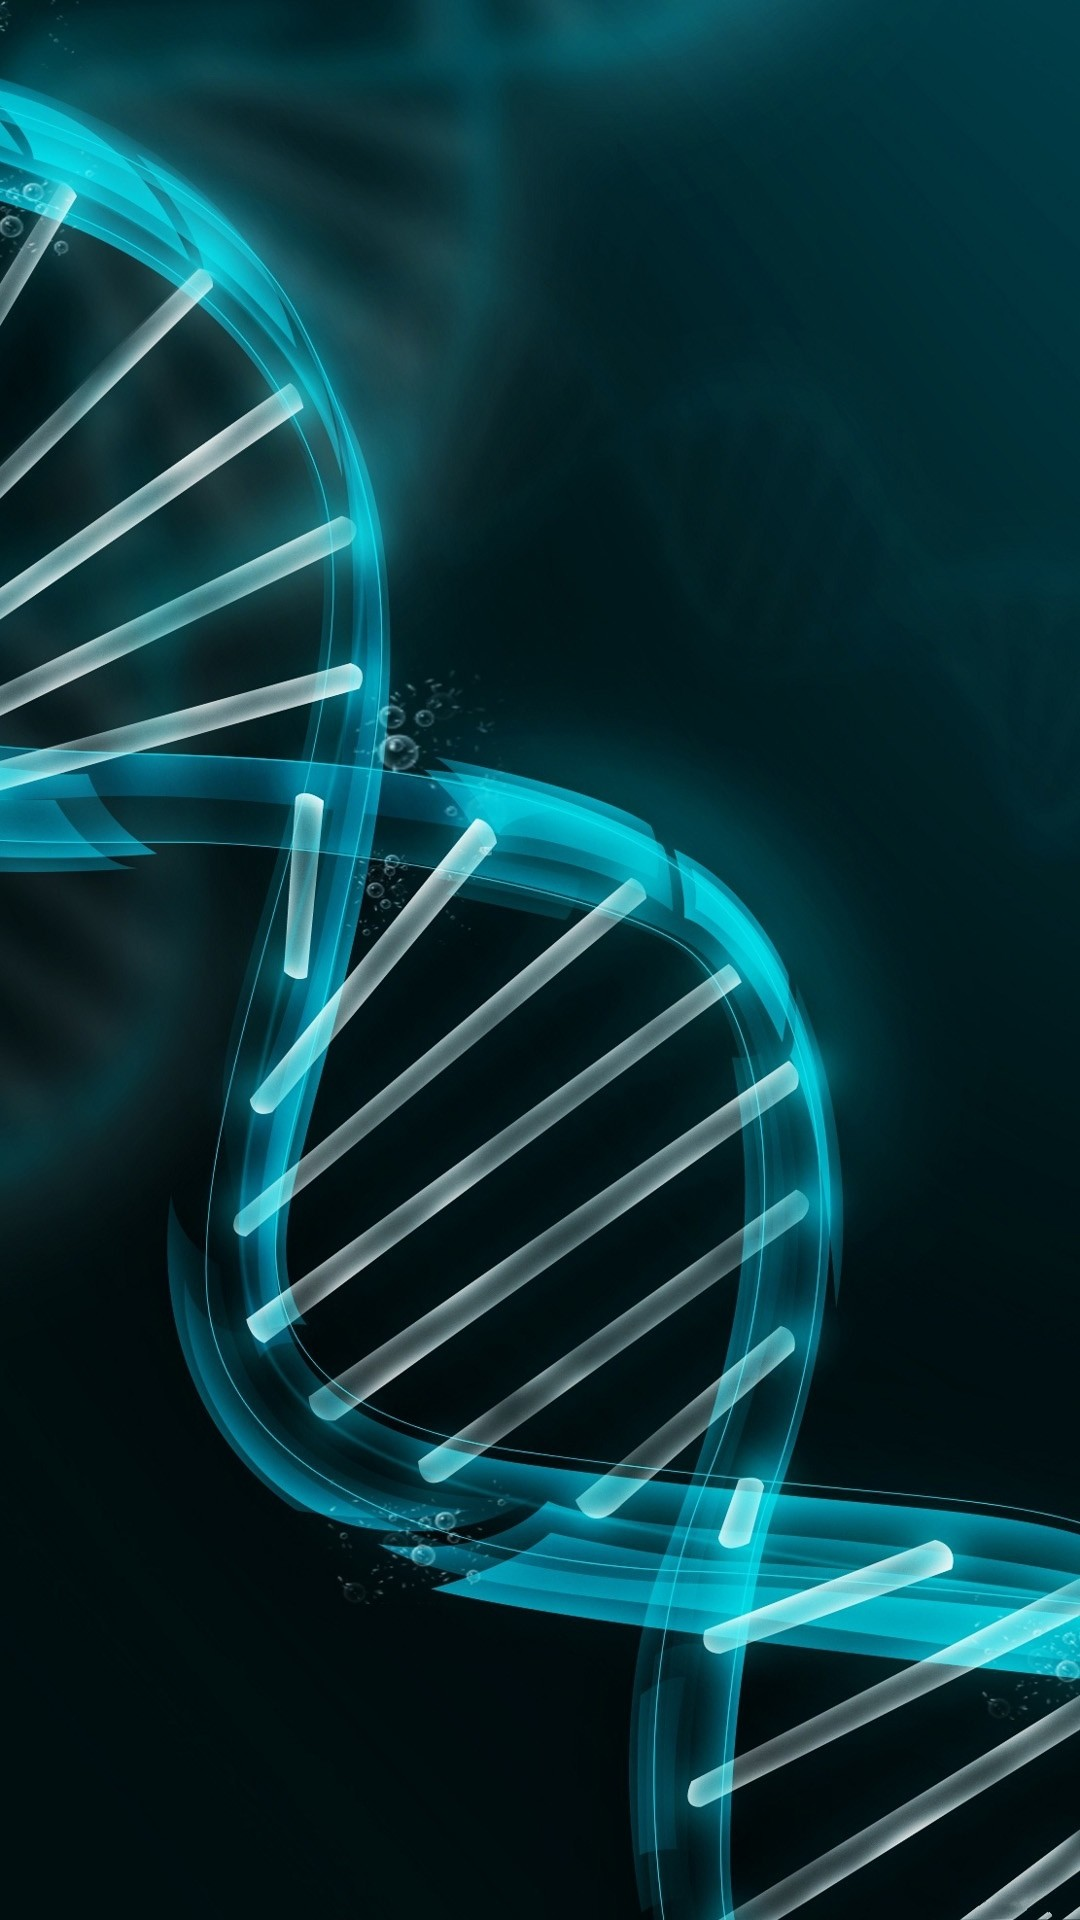 1080x1920 3D DNA illustration - Best htc one wallpapers